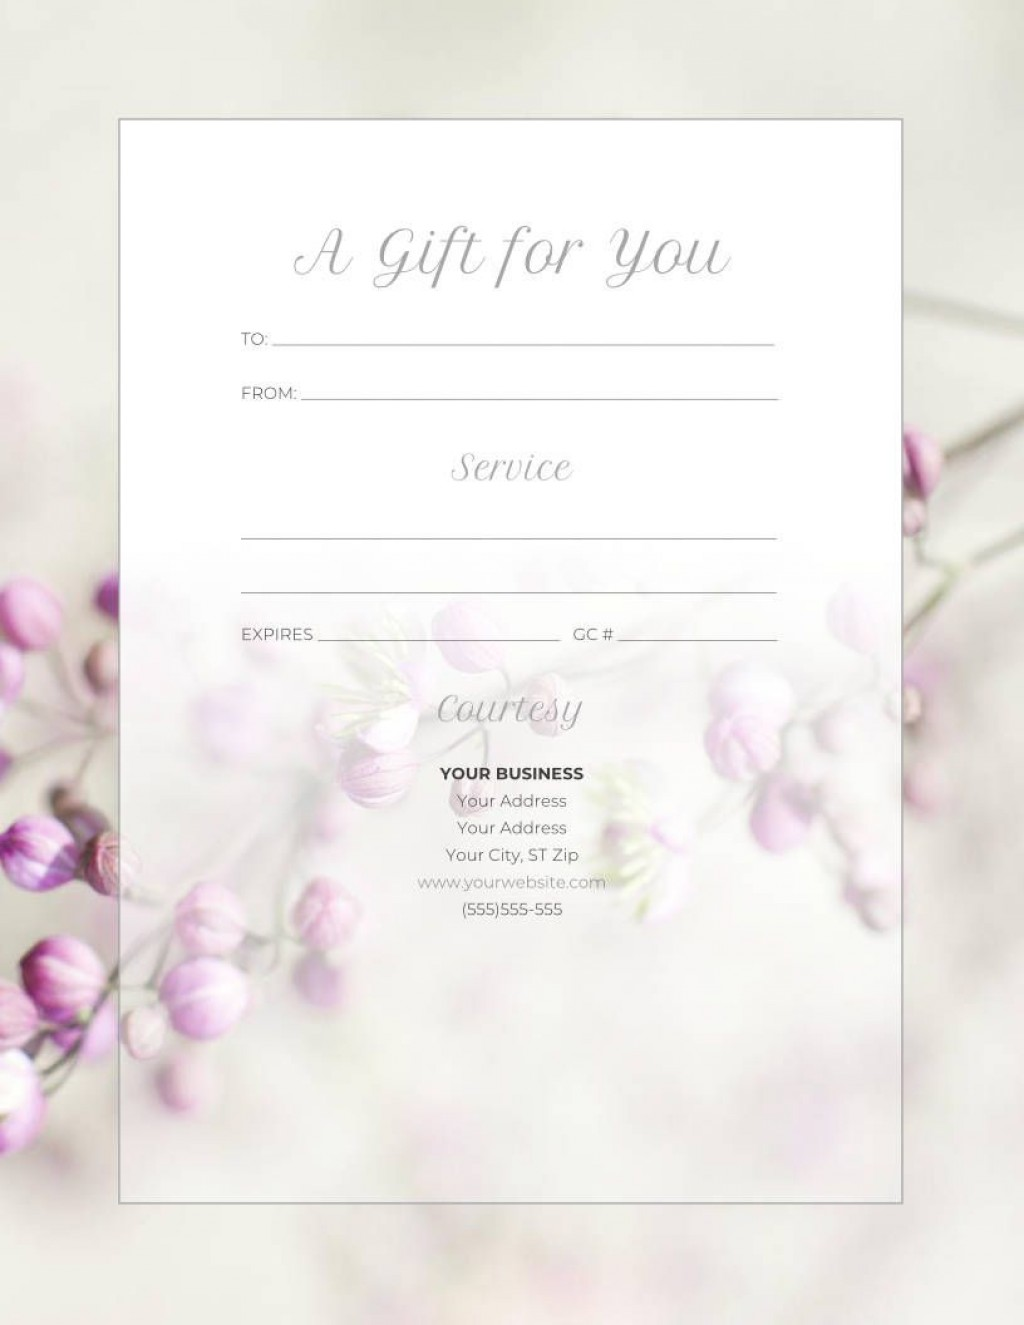 009 Magnificent Free Template For Gift Certificate Photo  Printable Birthday Mac In WordLarge